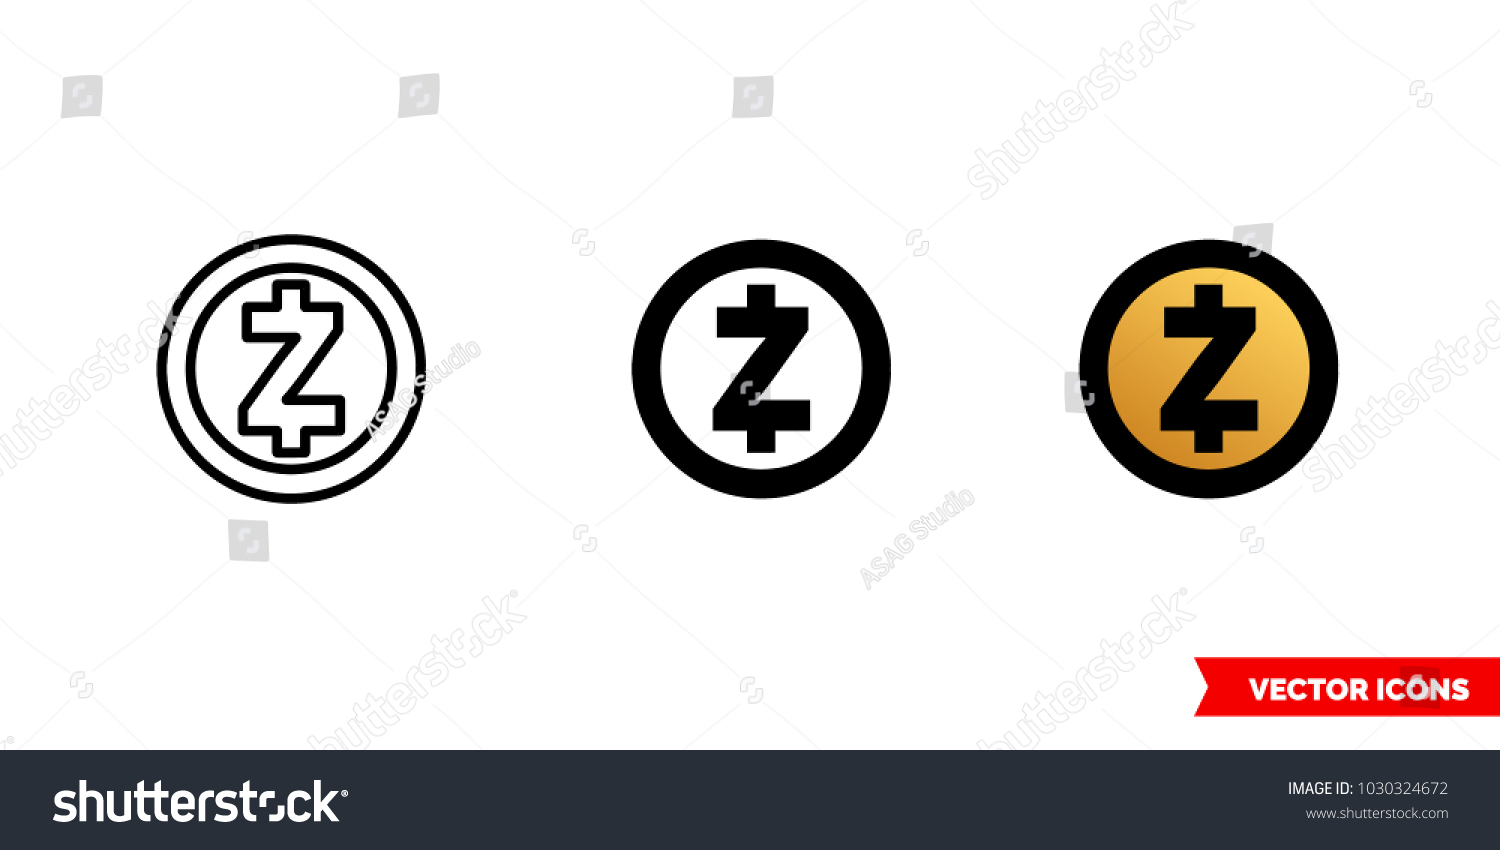 Zcash Icon Of 3 Types Color Black And White Outline Isolated Vector